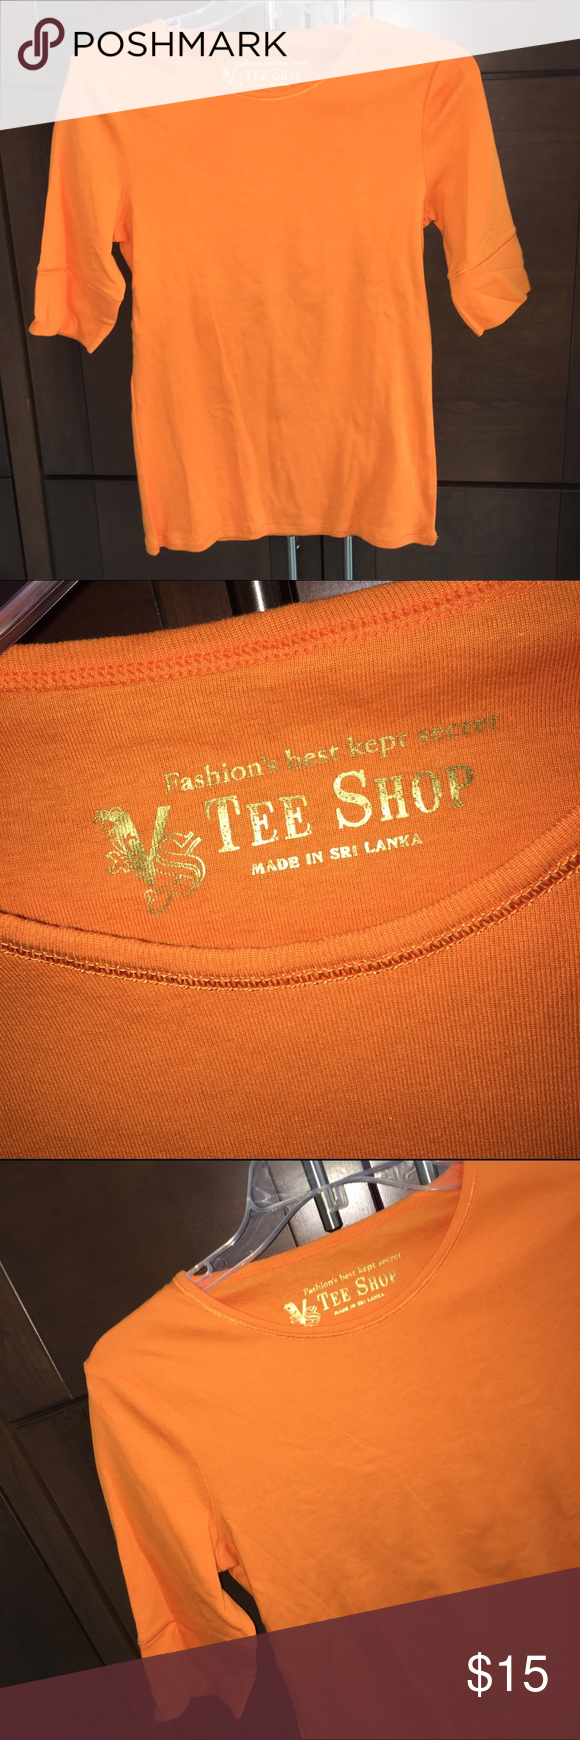 """NEW orange tee! Elbow sleeves, 100% cotton. BRAND NEW NEVER WORN, no tags bec ordered by mail. 24"""" long. Gorgeous orange color. Victoria's Secret Tops Tees - Long Sleeve"""